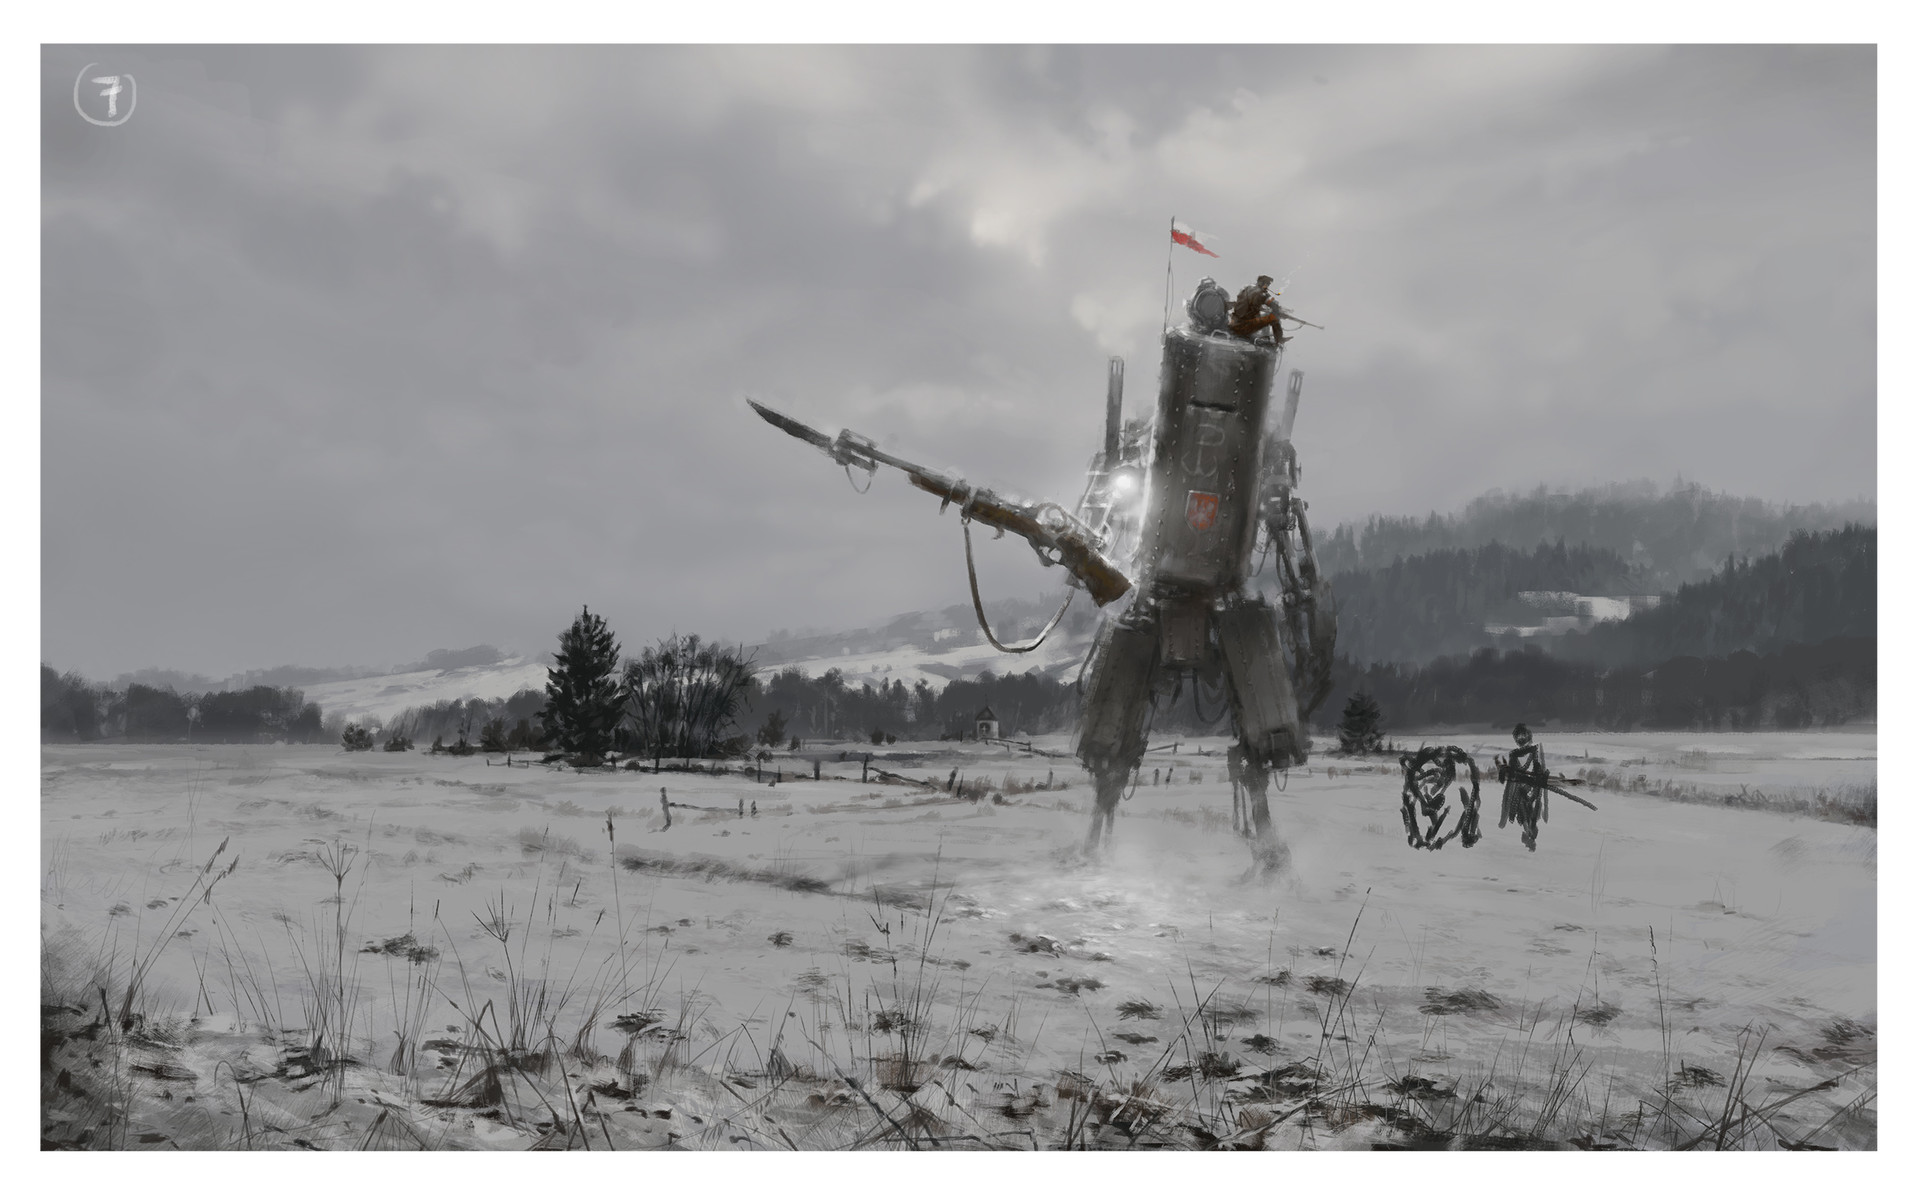 Jakub rozalski work proces watch07